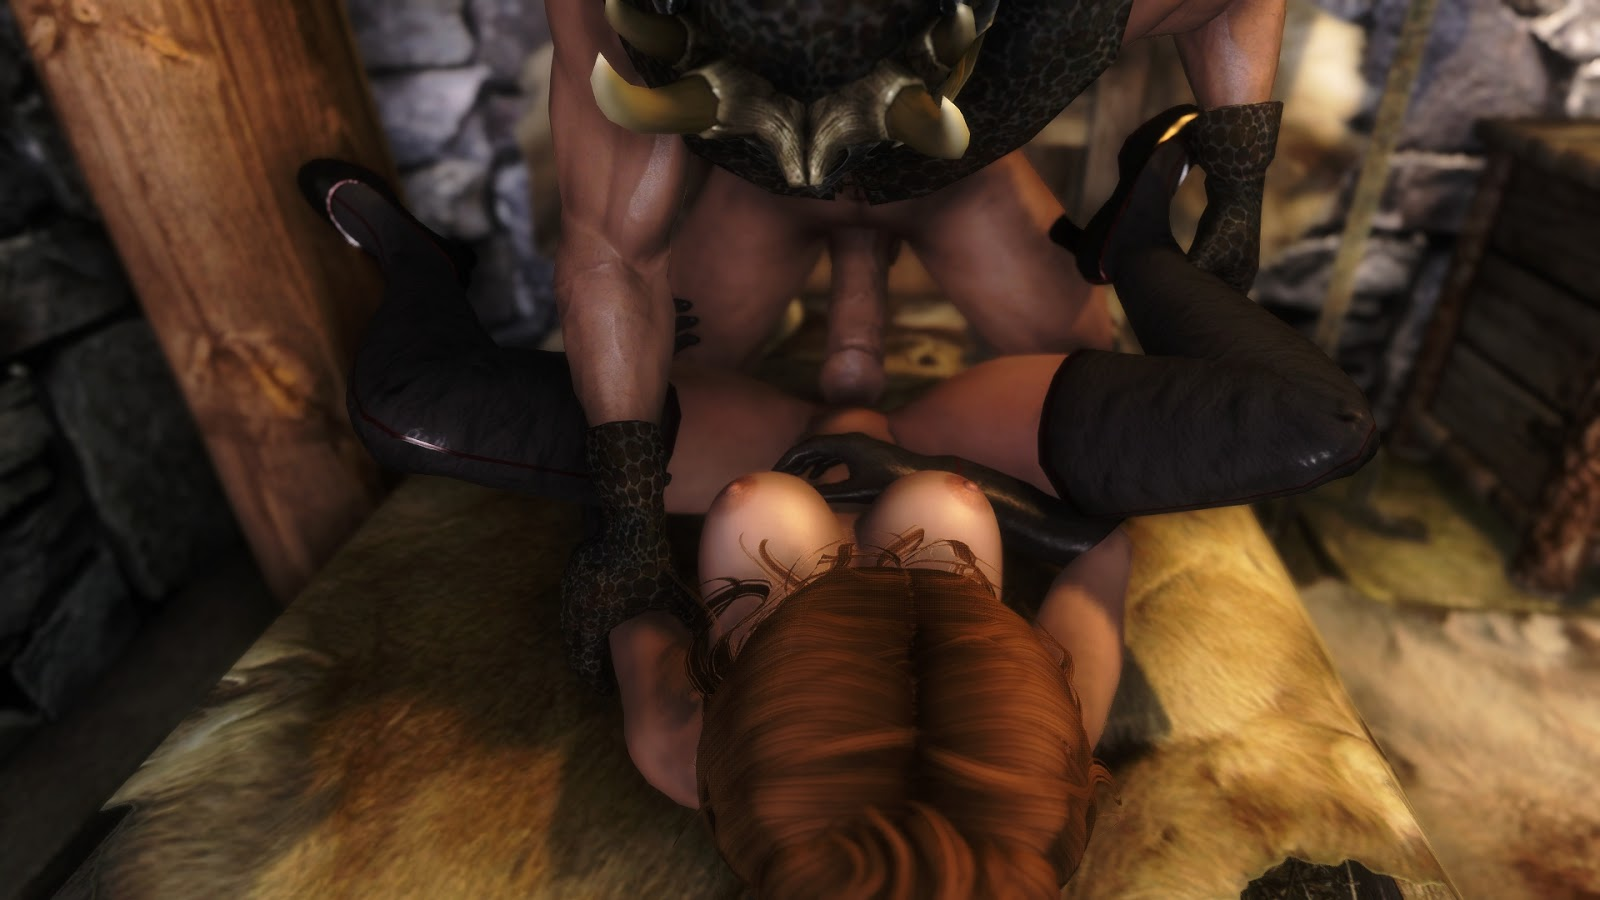 Skyrim sex nude -youtube sex gallery